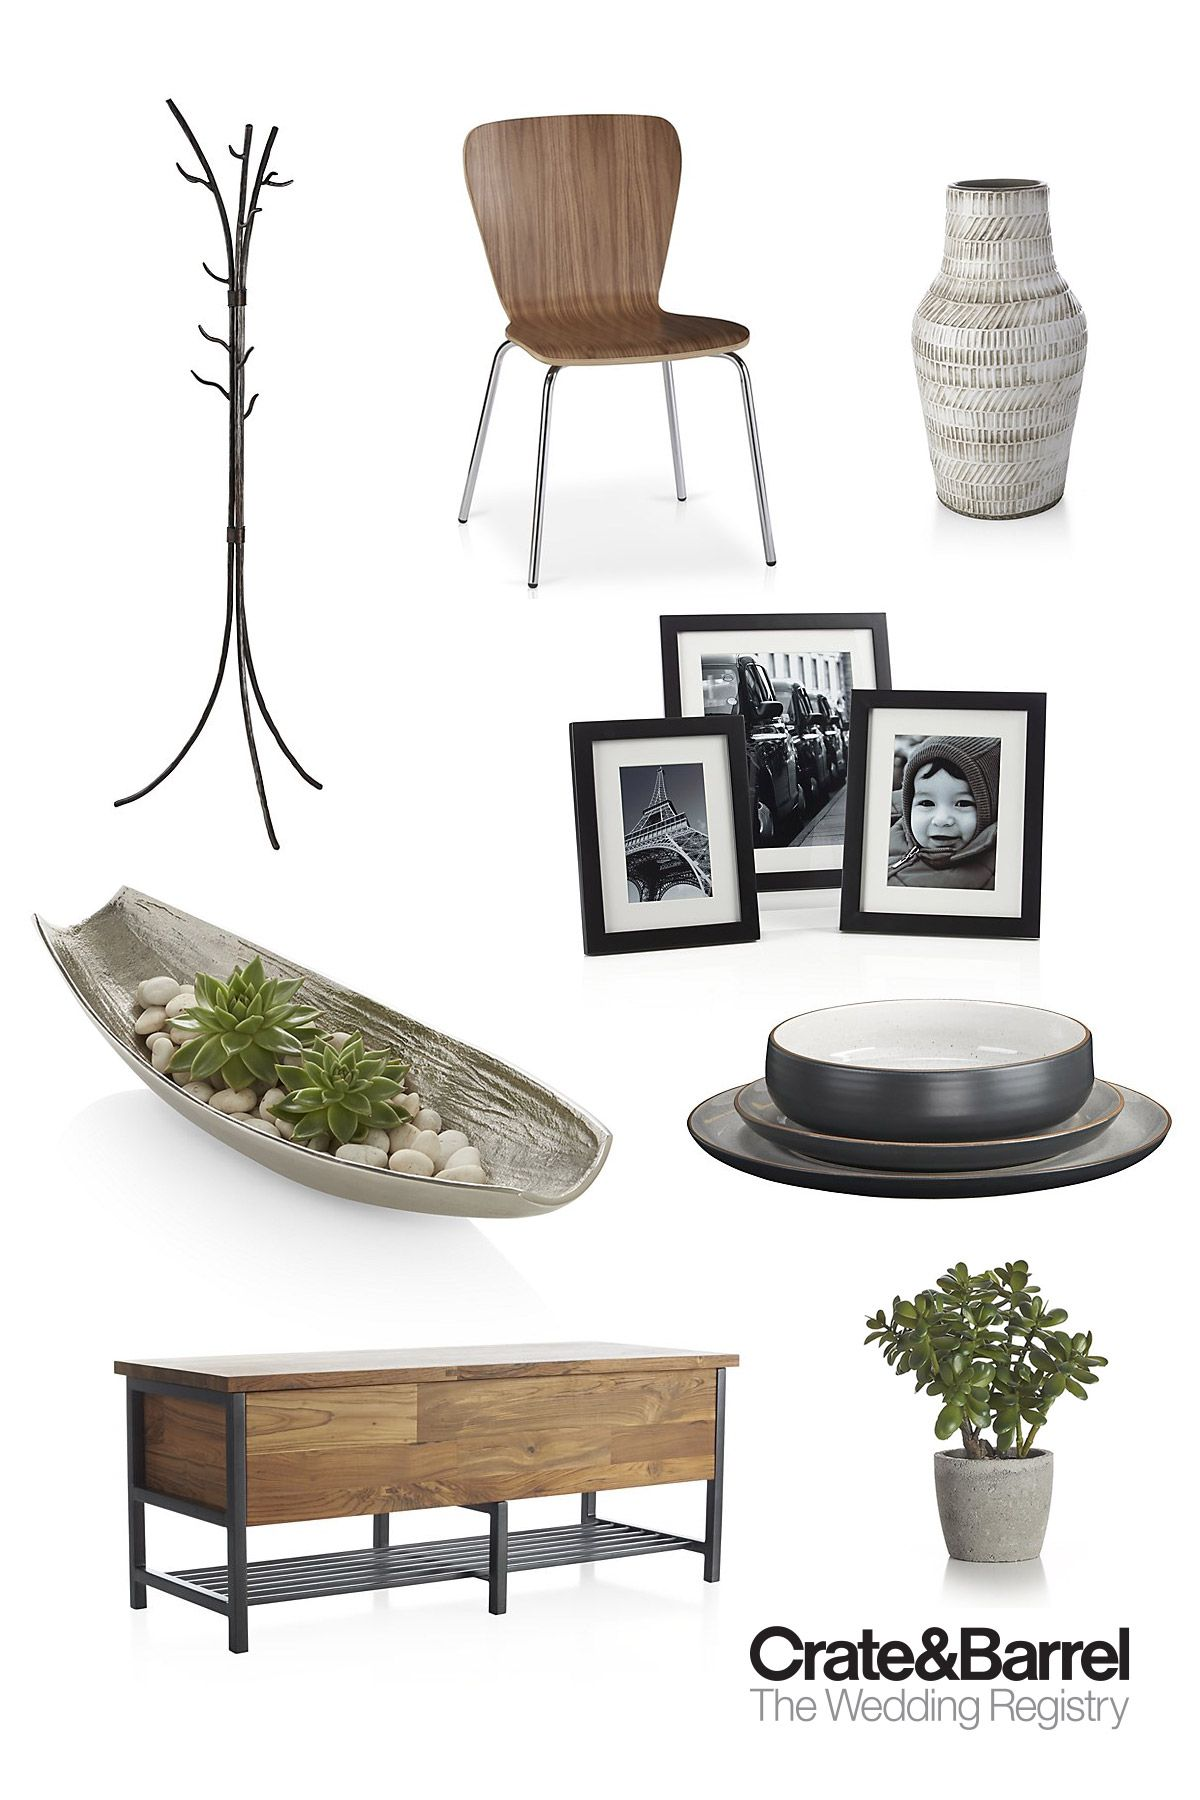 Crate And Barrel Wedding Registry.Crate And Barrel The Wedding Registry Bridal Gift Inspiration By